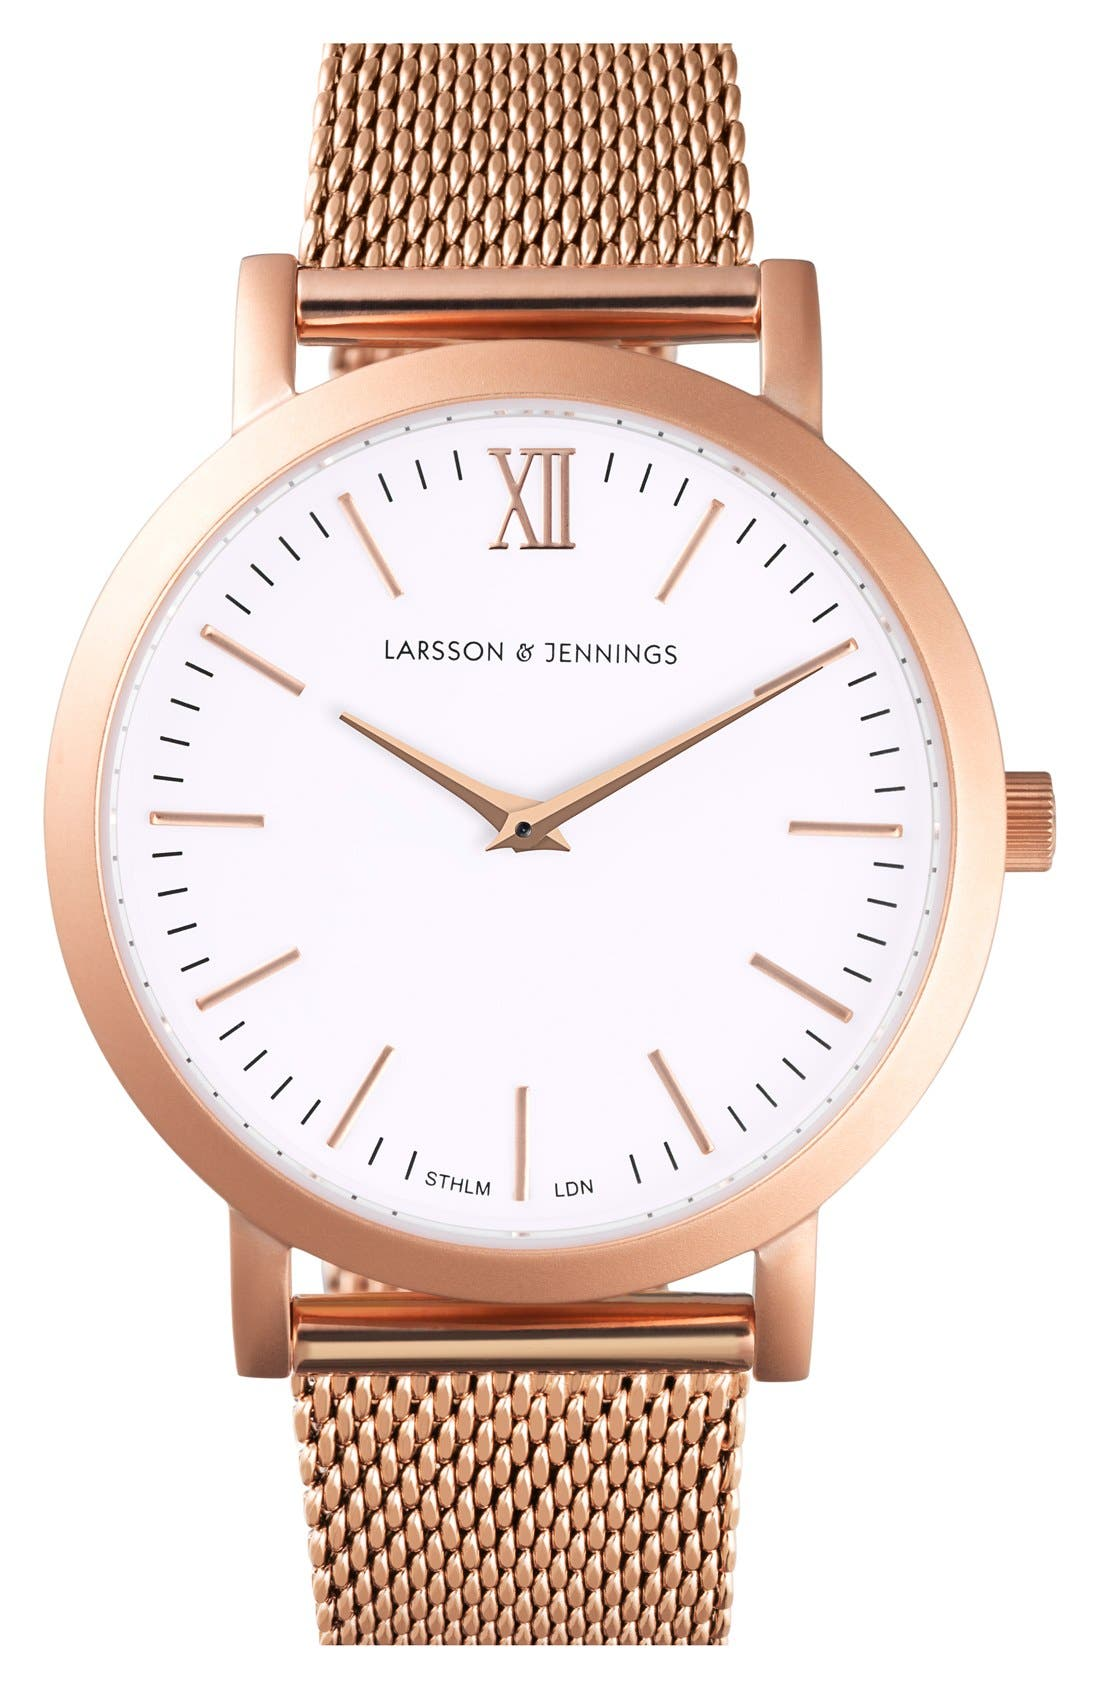 LARSSON & JENNINGS Lugano Mesh Strap Watch, 33mm